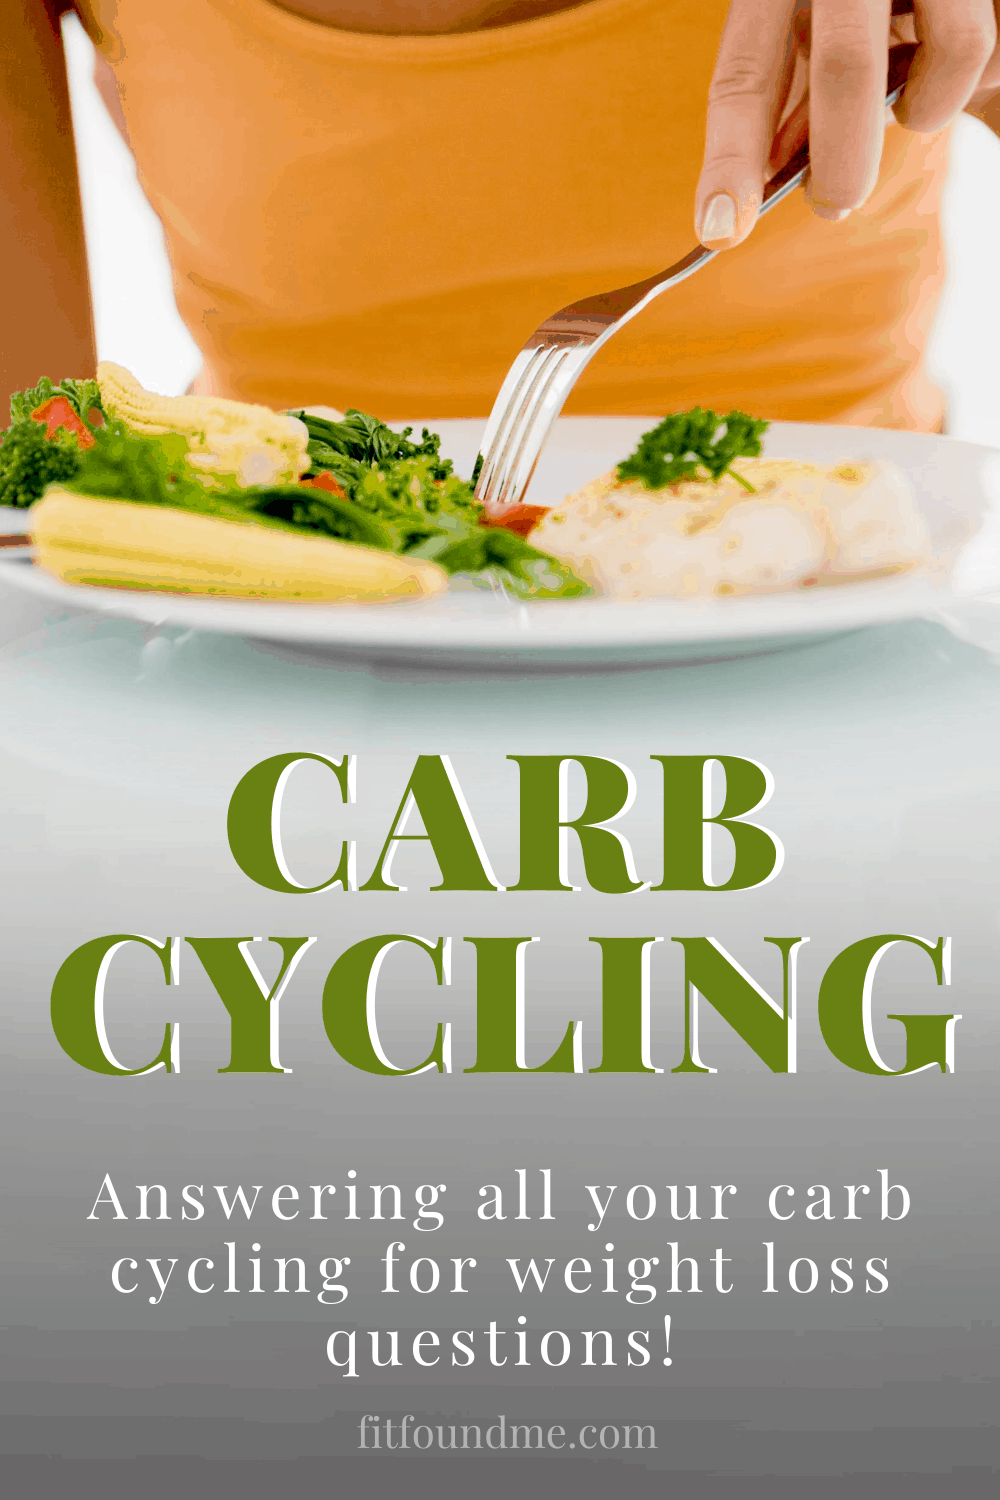 Looking back at the beginning of my weight loss, I was carb cycling to lose weight and didn't even realize it. Prior to 2013, my normal daily diet was carbs, carbs, and more carbs. Problem was, after 40, that also meant pounds, pounds and more pounds. That was until I decided enough was enough. The carb cycling diet turned out to be a great way for me to lose over 35lbs. Salads are great, but who wants to only eat salads? Carb cycling for women works because what woman doesn't love carbs? via @fitfoundme